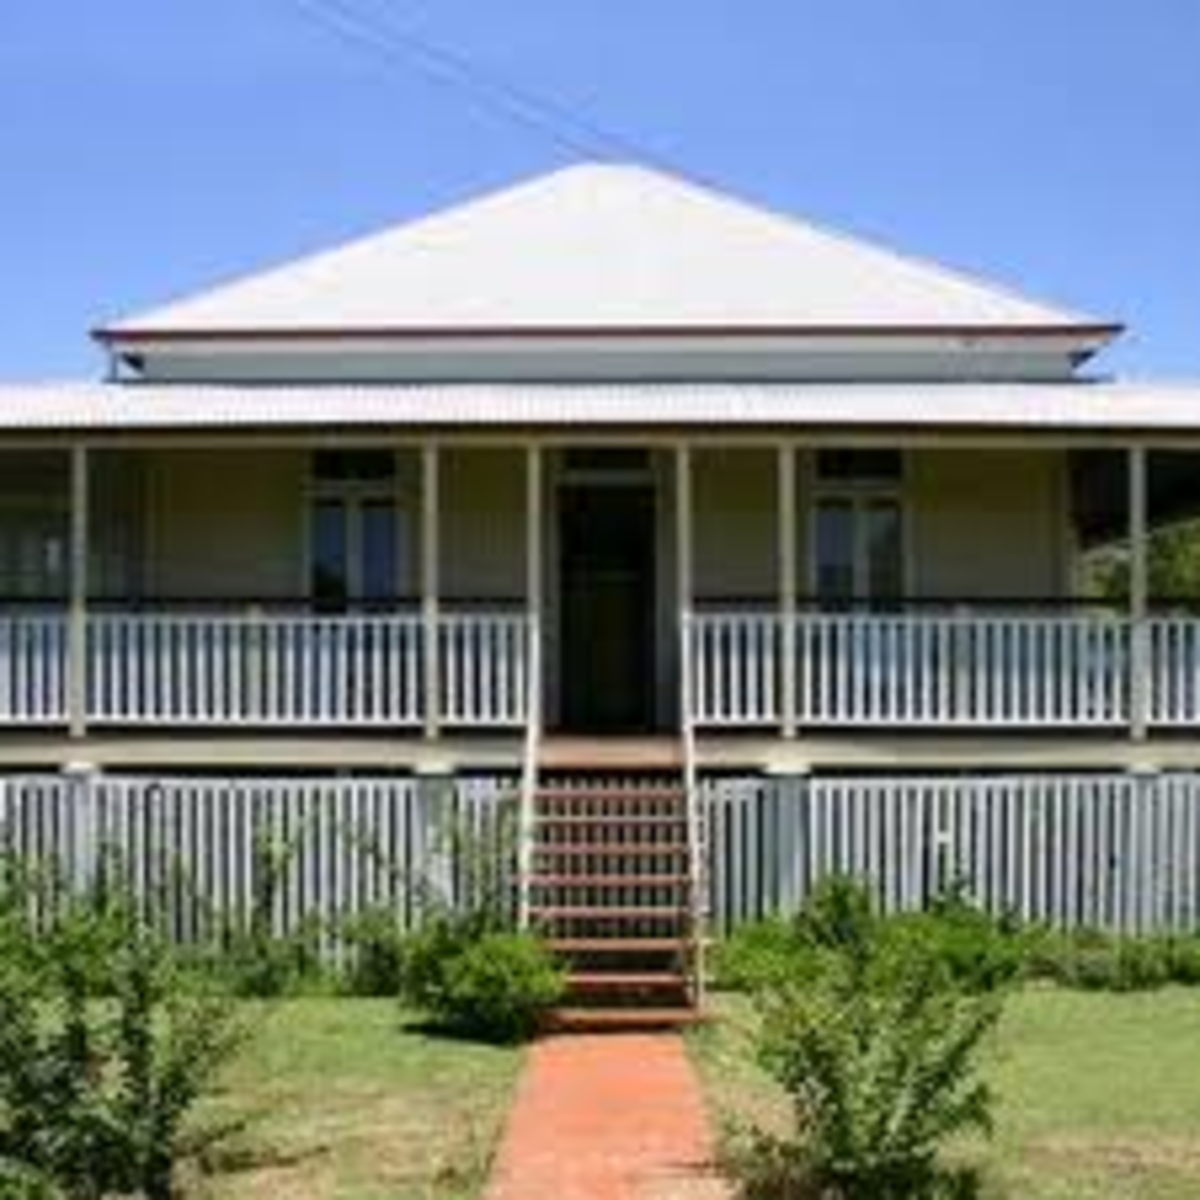 This is a typical smaller version of the houses, sometimes they are called workers cottages, because they were made for people that could not afford the more typical Queenslander